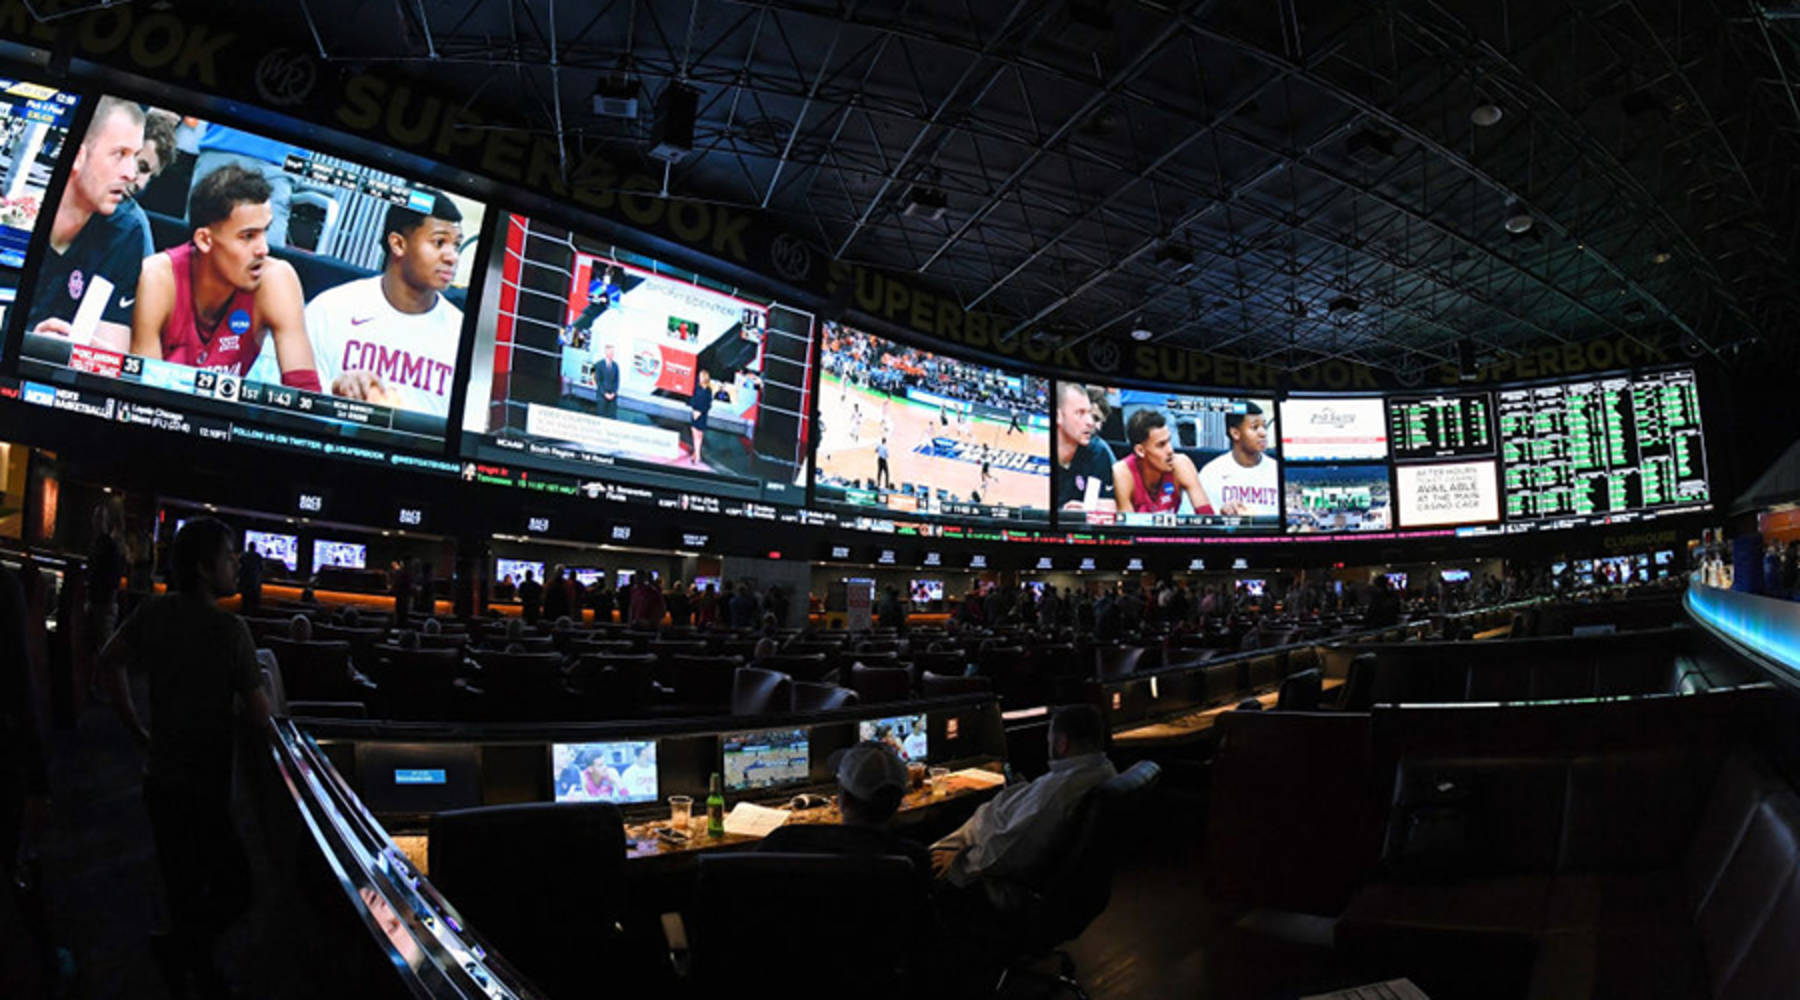 How much will sports leagues make from legal betting? - Marketplace